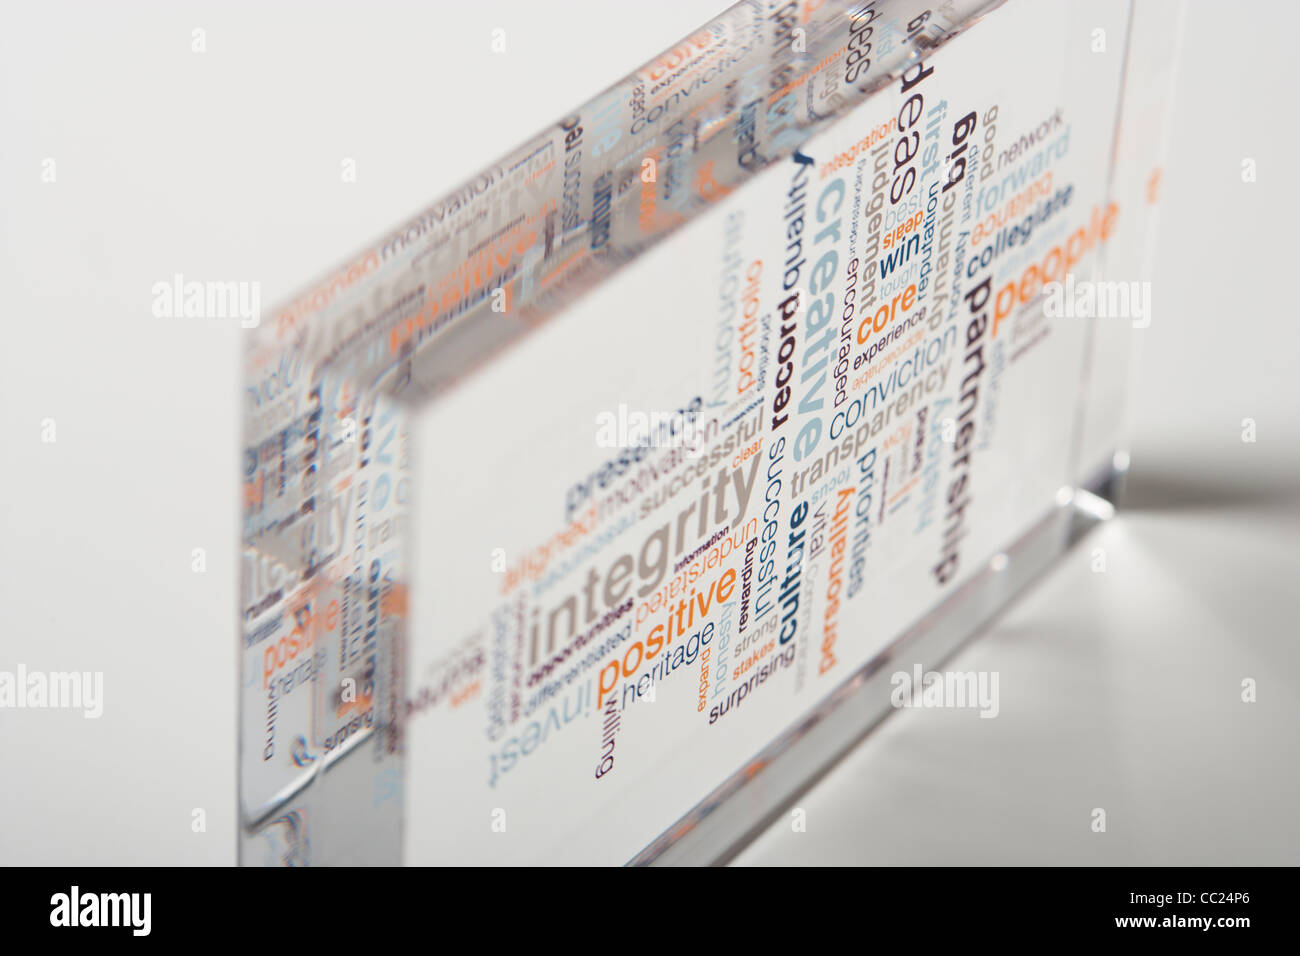 clear acrylic block with corporate values - Stock Image